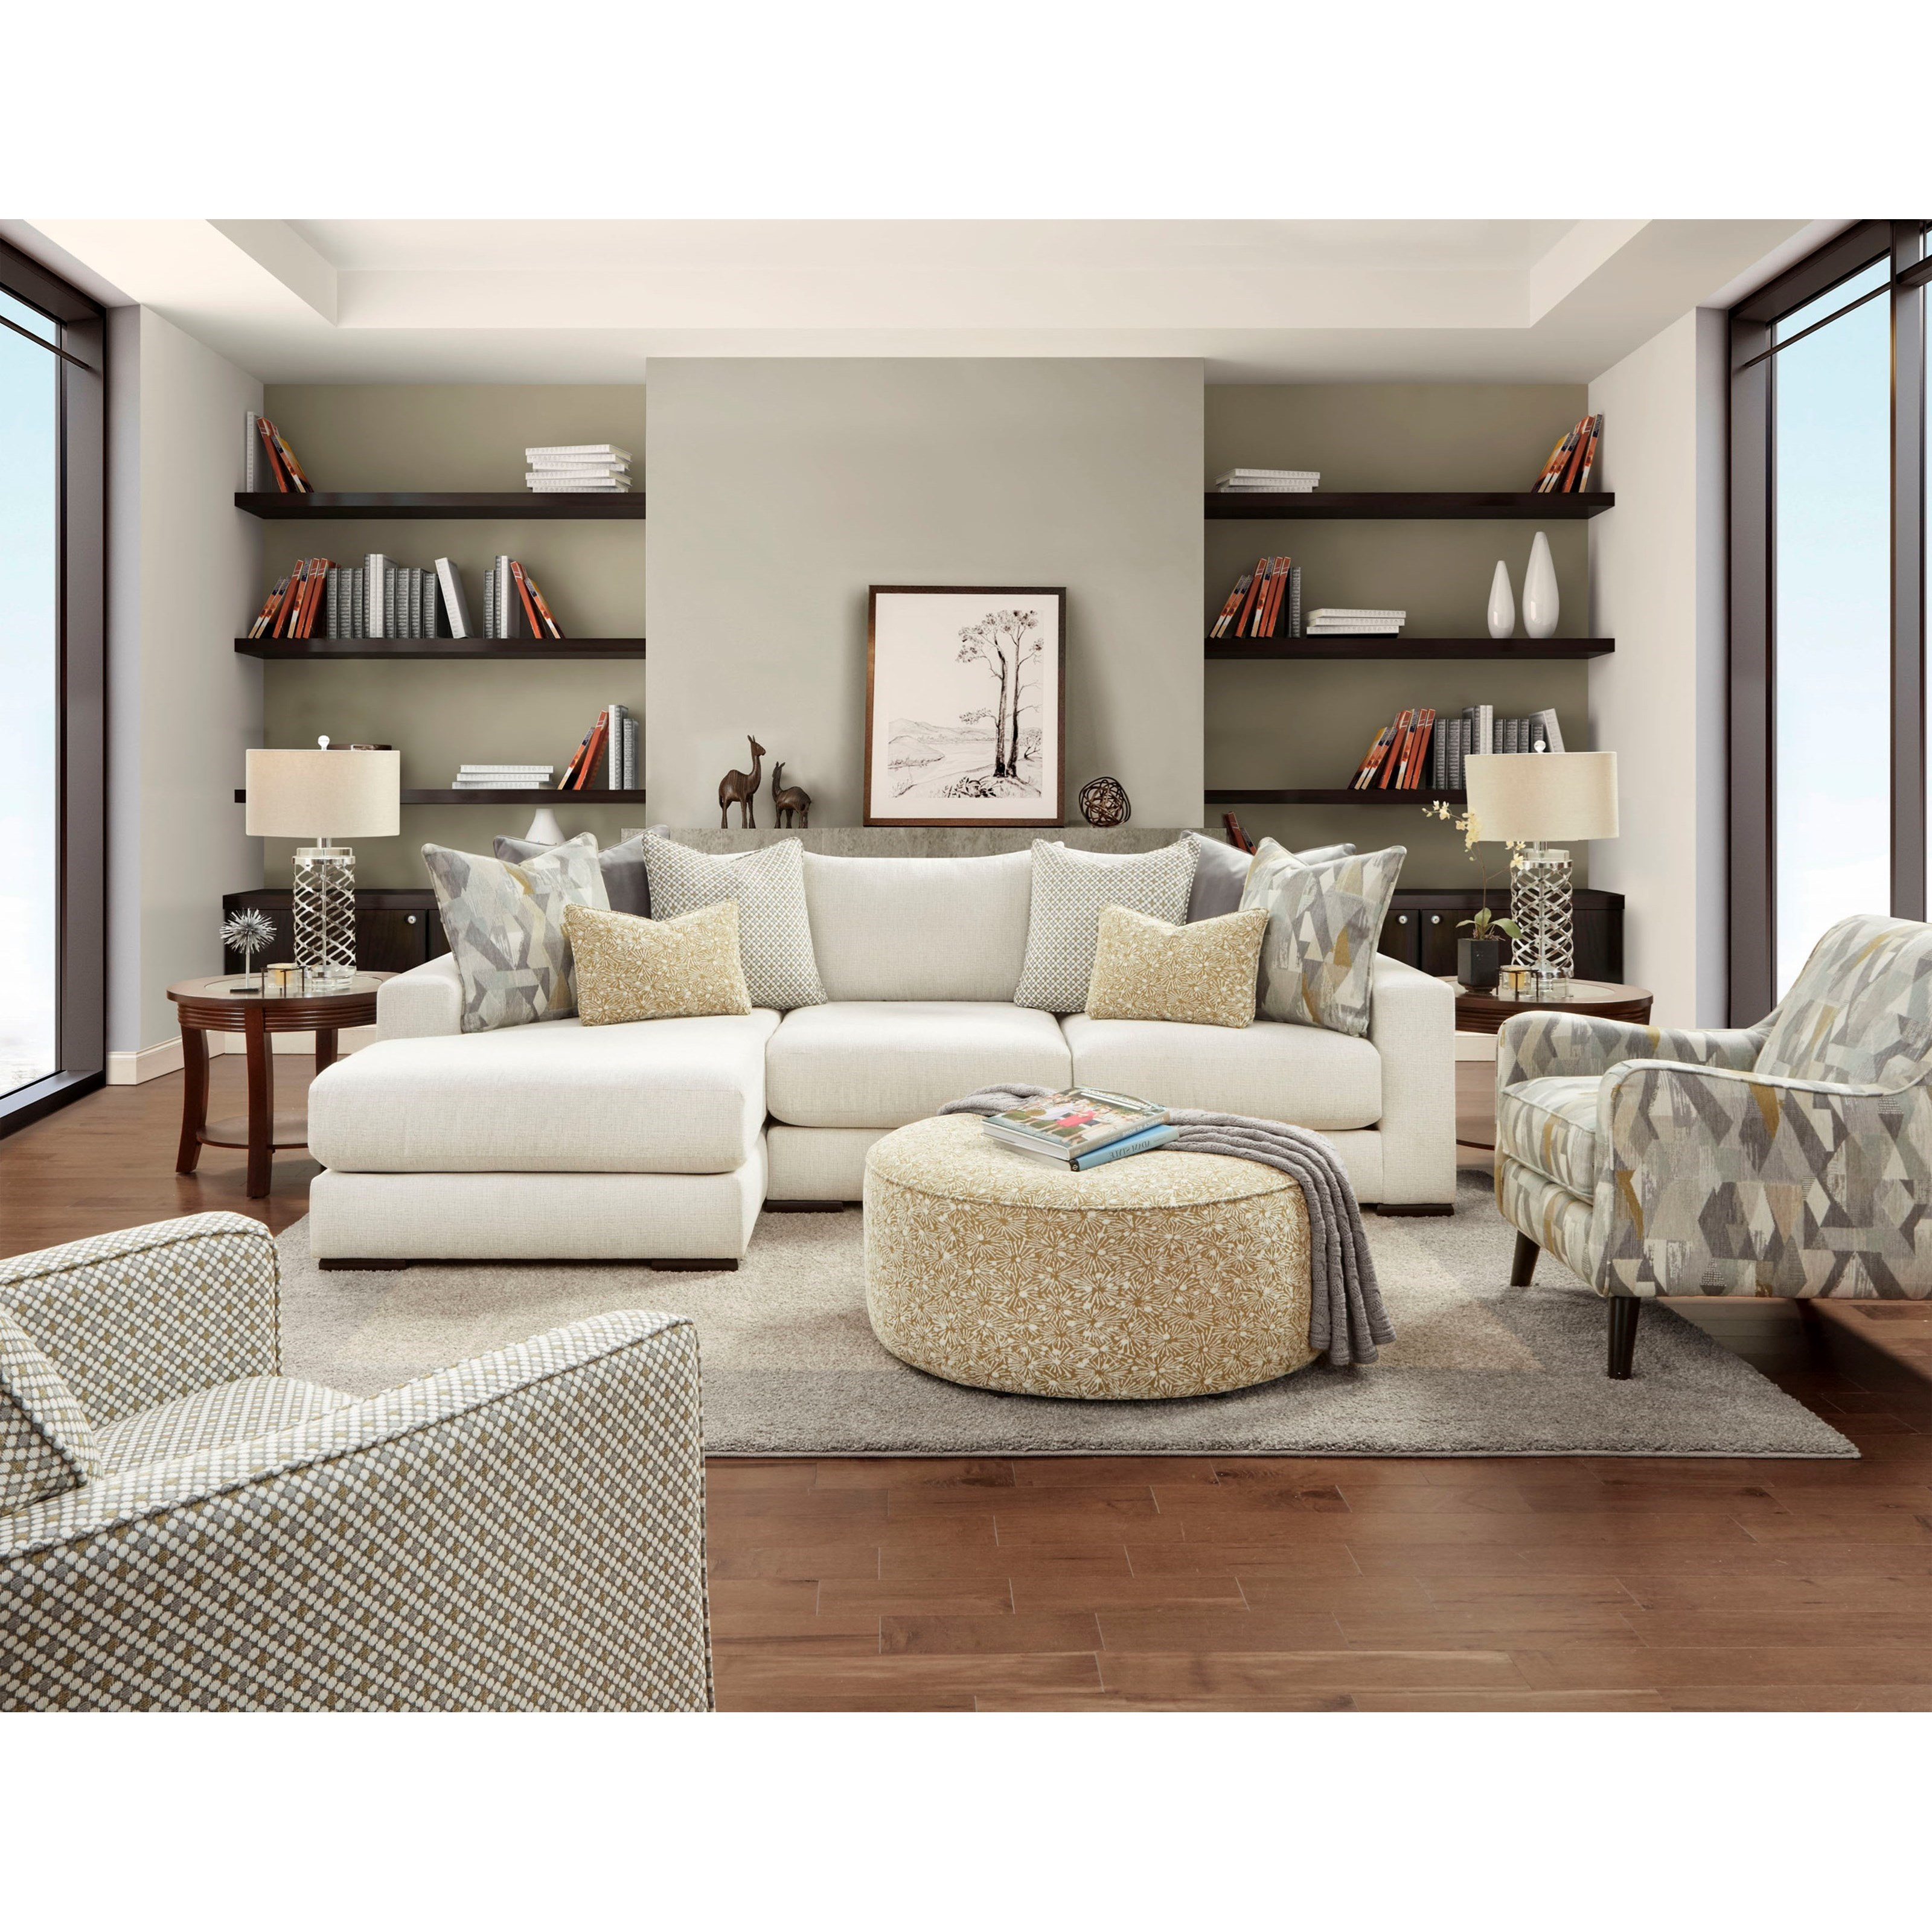 1050-20 Living Room Group by Fusion Furniture at Prime Brothers Furniture